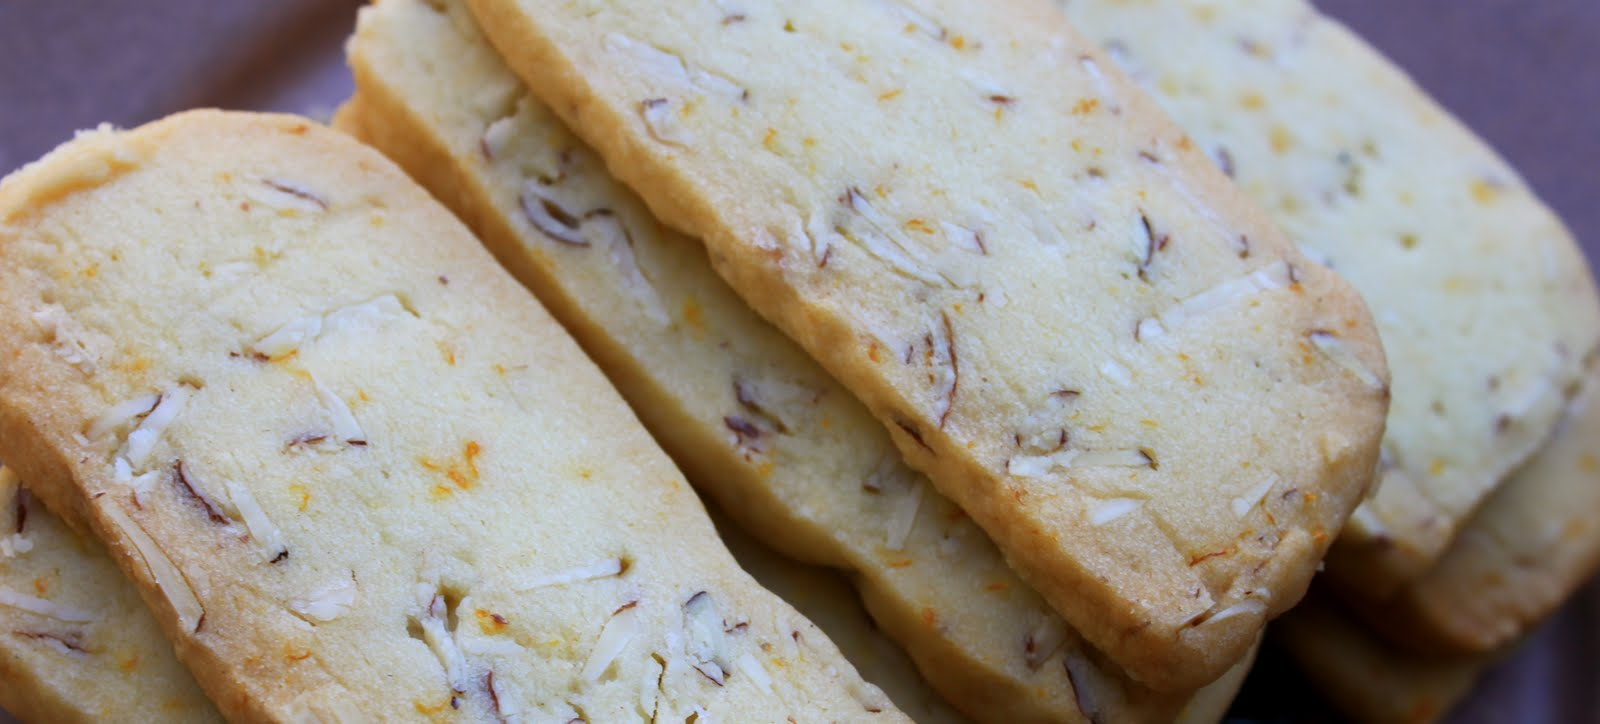 Bountiful Kitchen: River's Run Almond Orange Shortbread